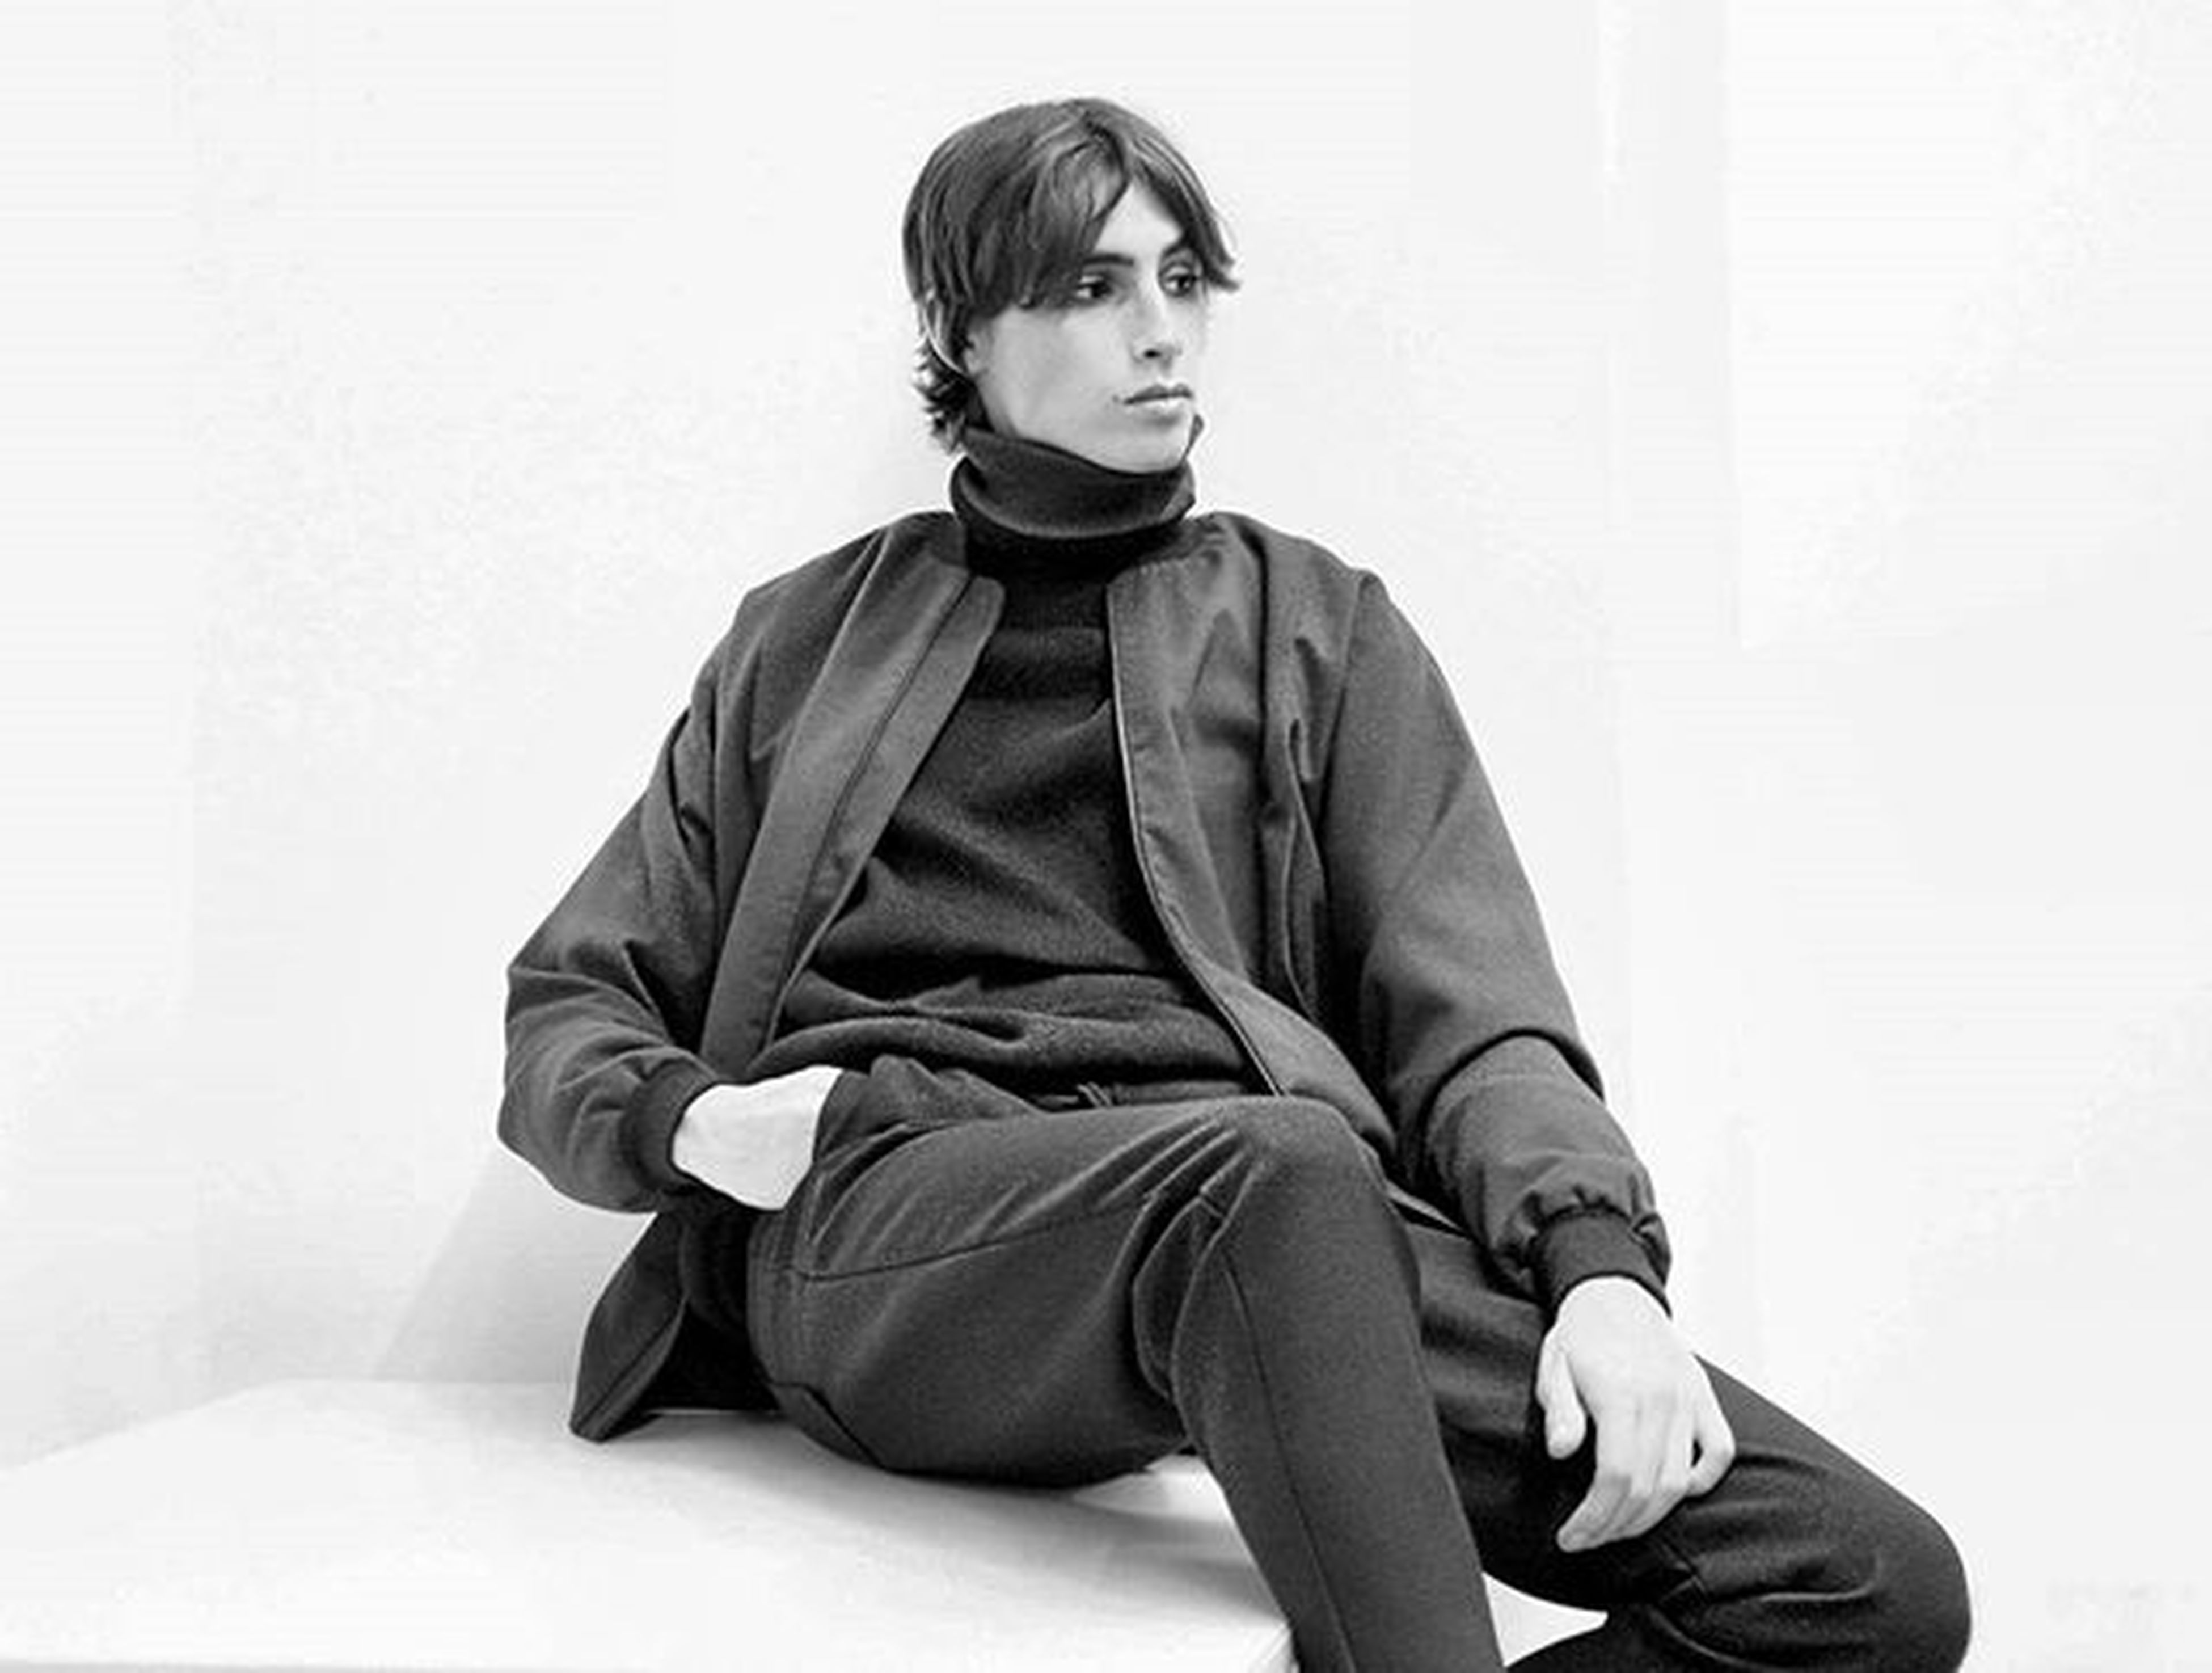 casual clothing, person, lifestyles, three quarter length, young adult, indoors, front view, full length, leisure activity, standing, sitting, young men, wall - building feature, portrait, side view, looking at camera, holding